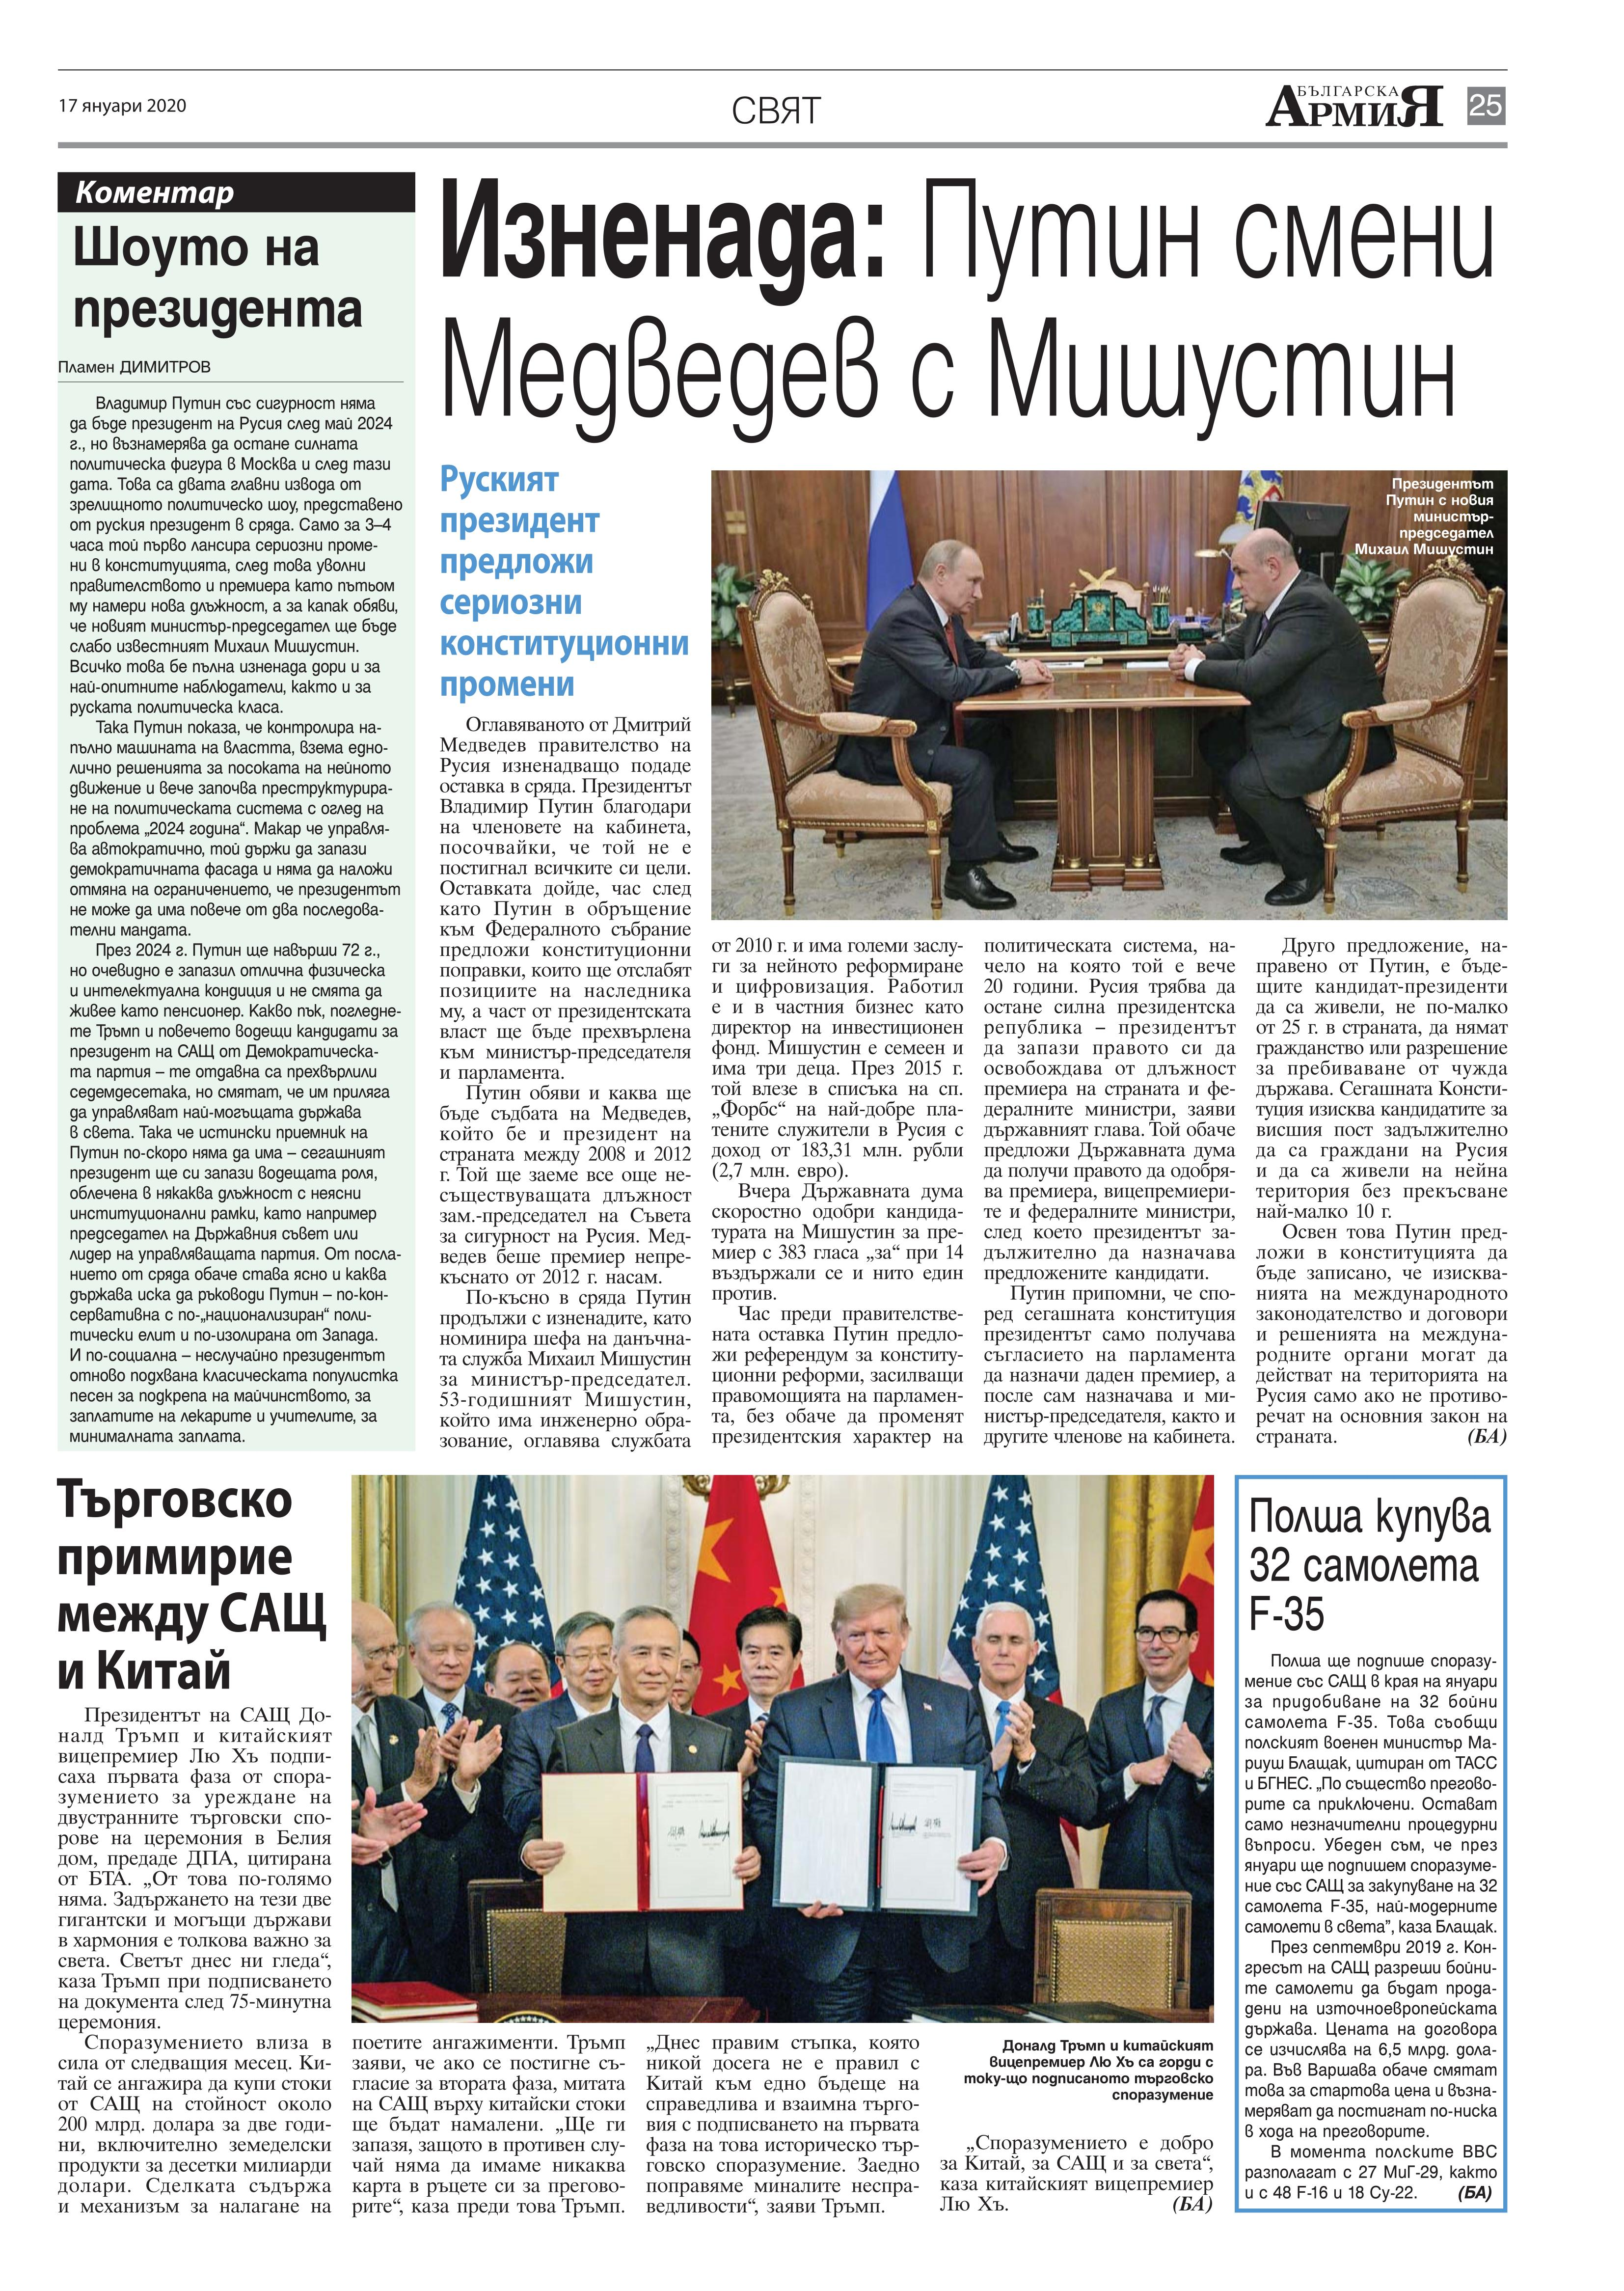 https://www.armymedia.bg/wp-content/uploads/2015/06/25.page1_-103.jpg